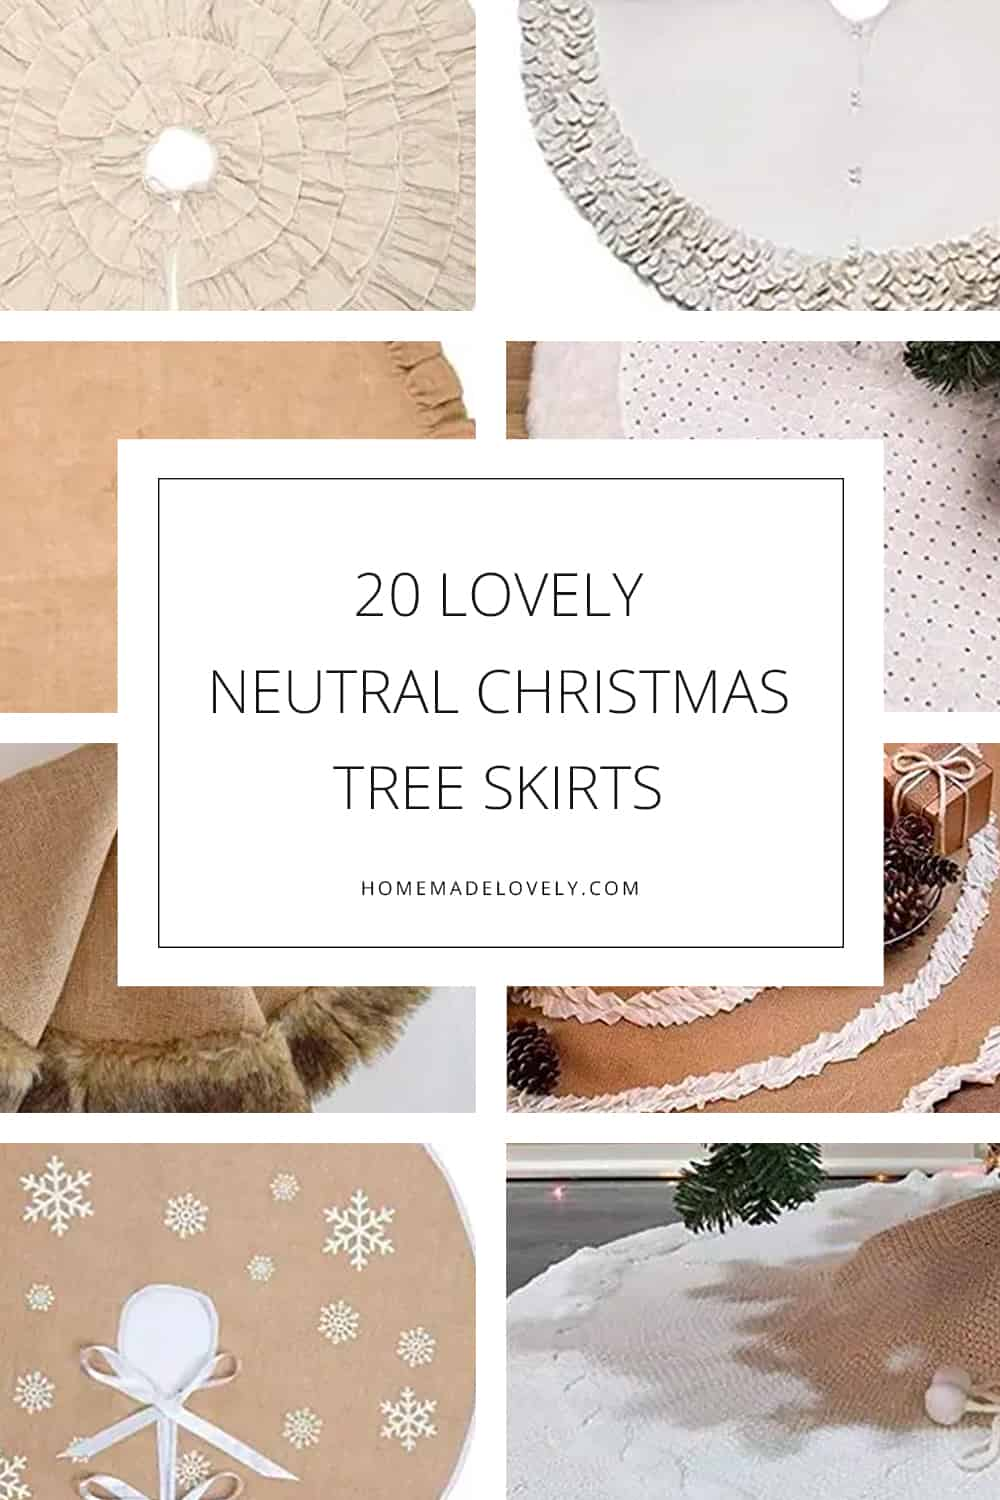 20 Lovely Neutral Christmas Tree Skirts to Go With Any Holiday Decor